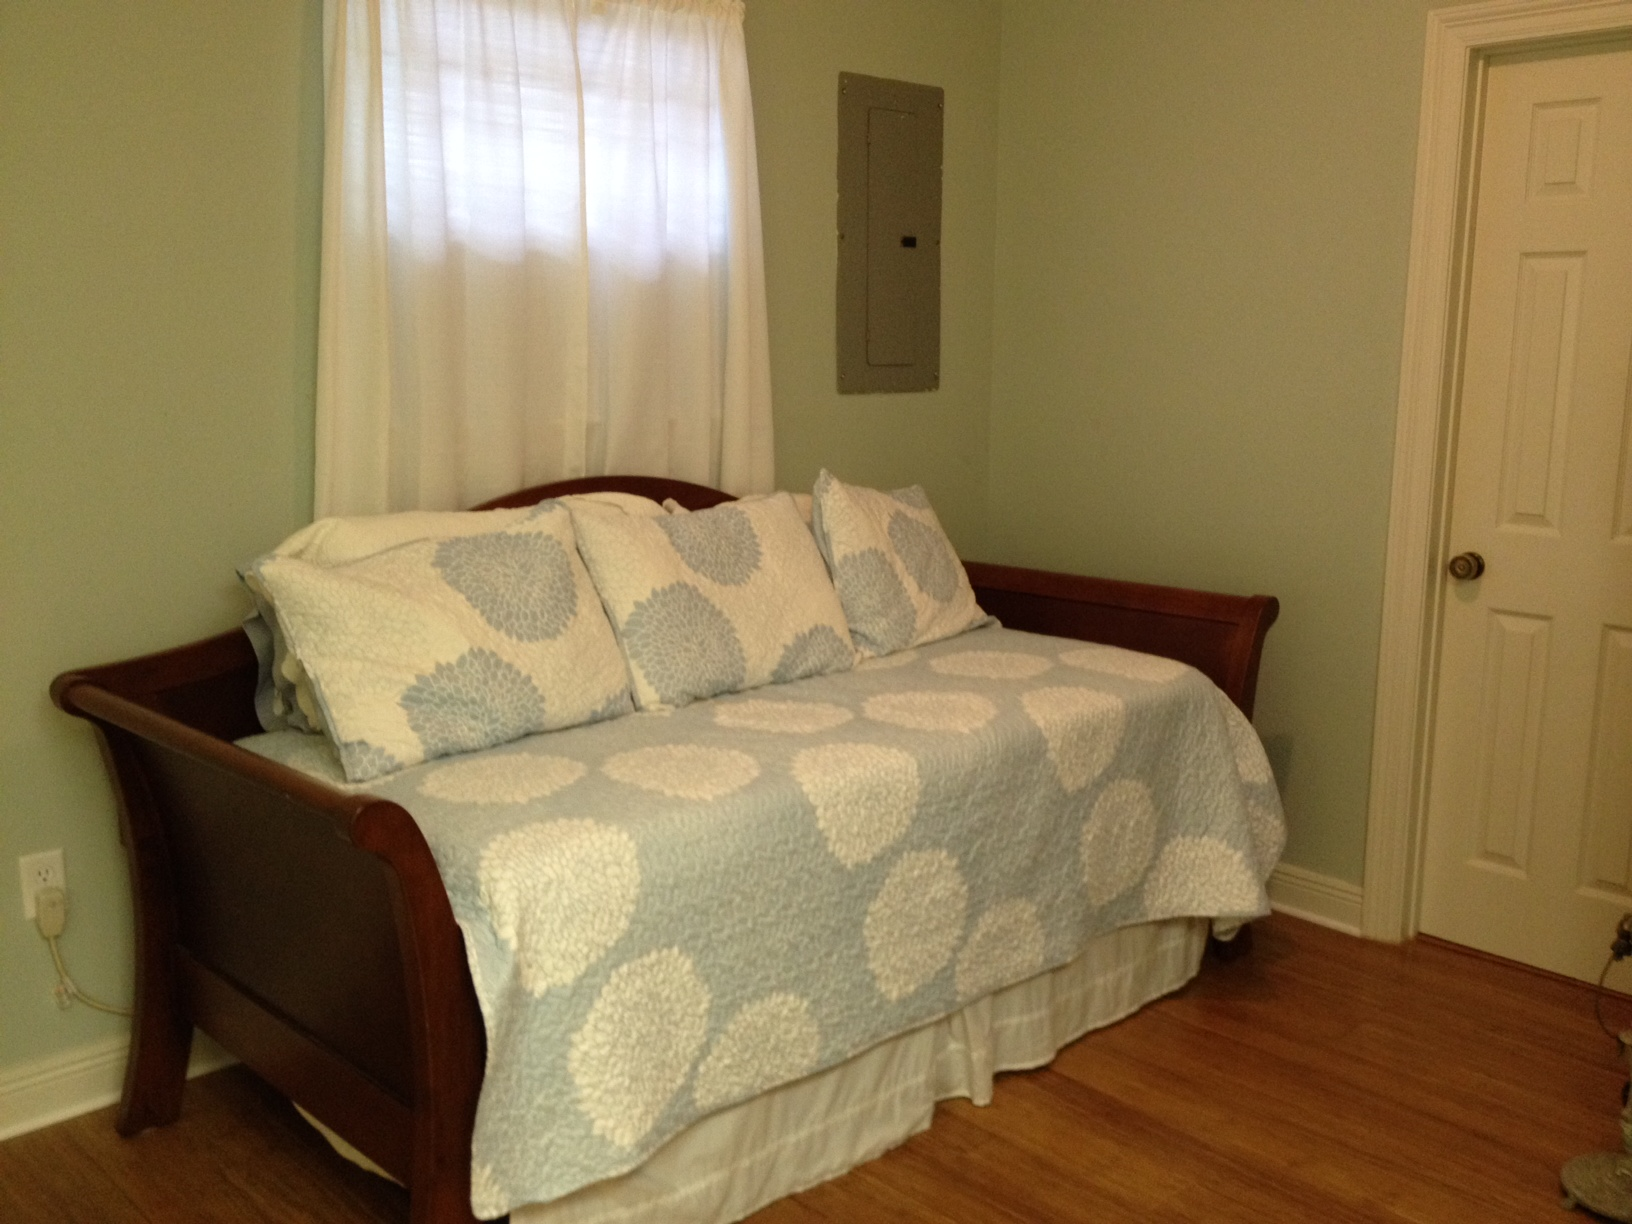 Furnished Efficiency Apartment Near Lsu Perfect For Grad Or Vet Student